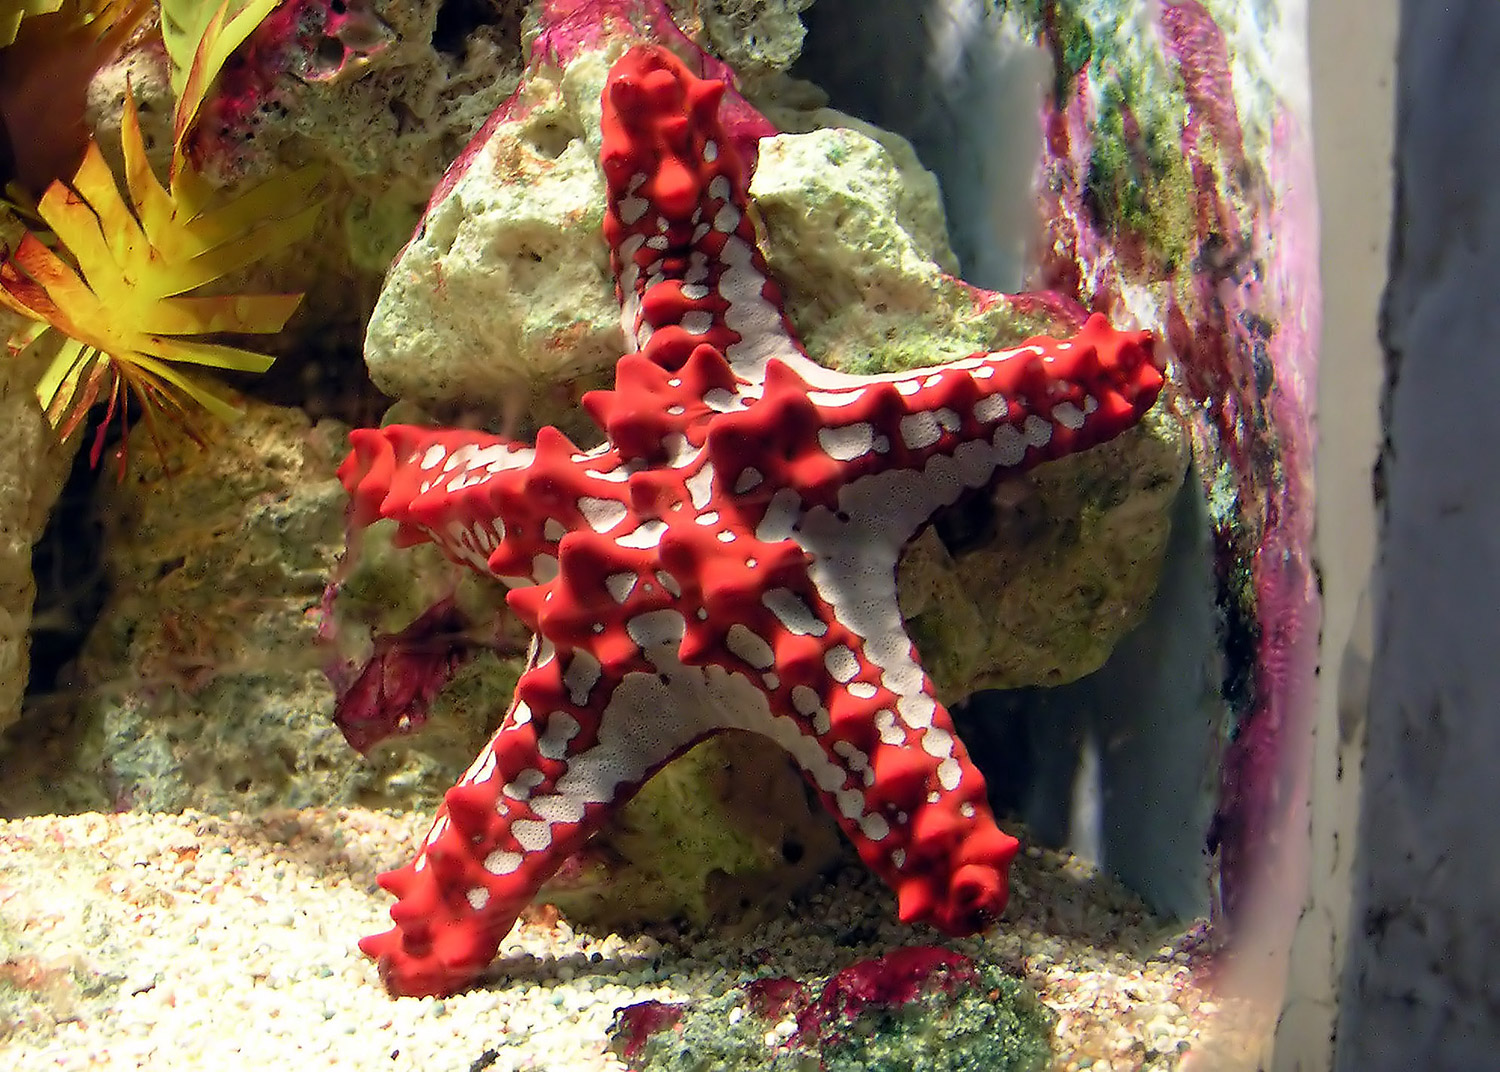 hight resolution of a five armed starfish represents the group more than any other member in the human mind at least despite being colourful and knobbly it is perfectly clear